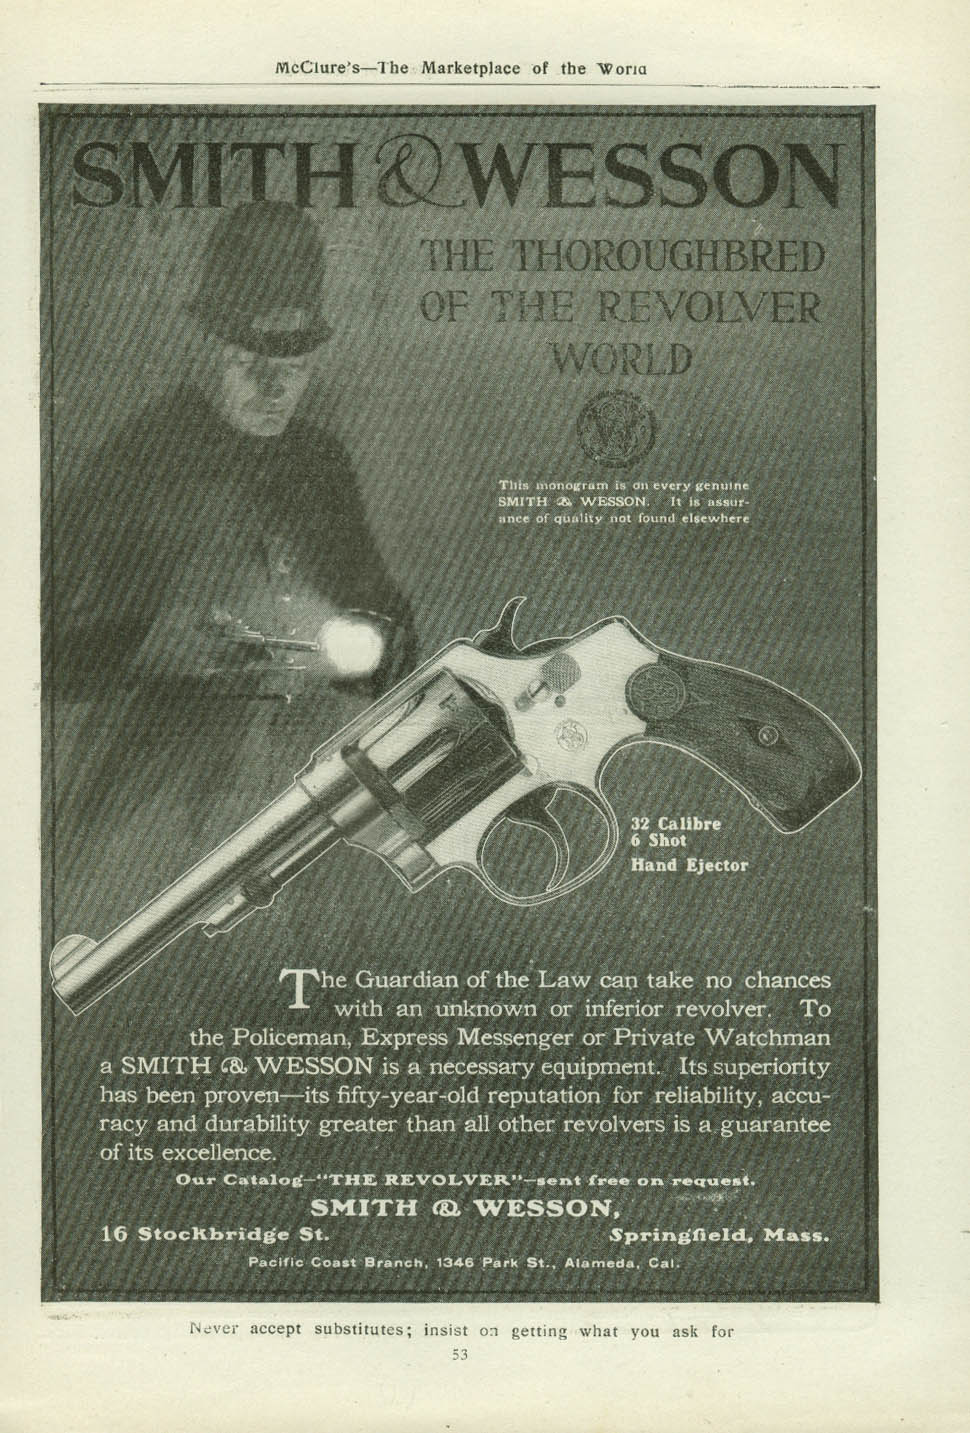 .32 Calibre 6 shot Smith & Wesson The Thoroughbred of the Revolver World ad 1907